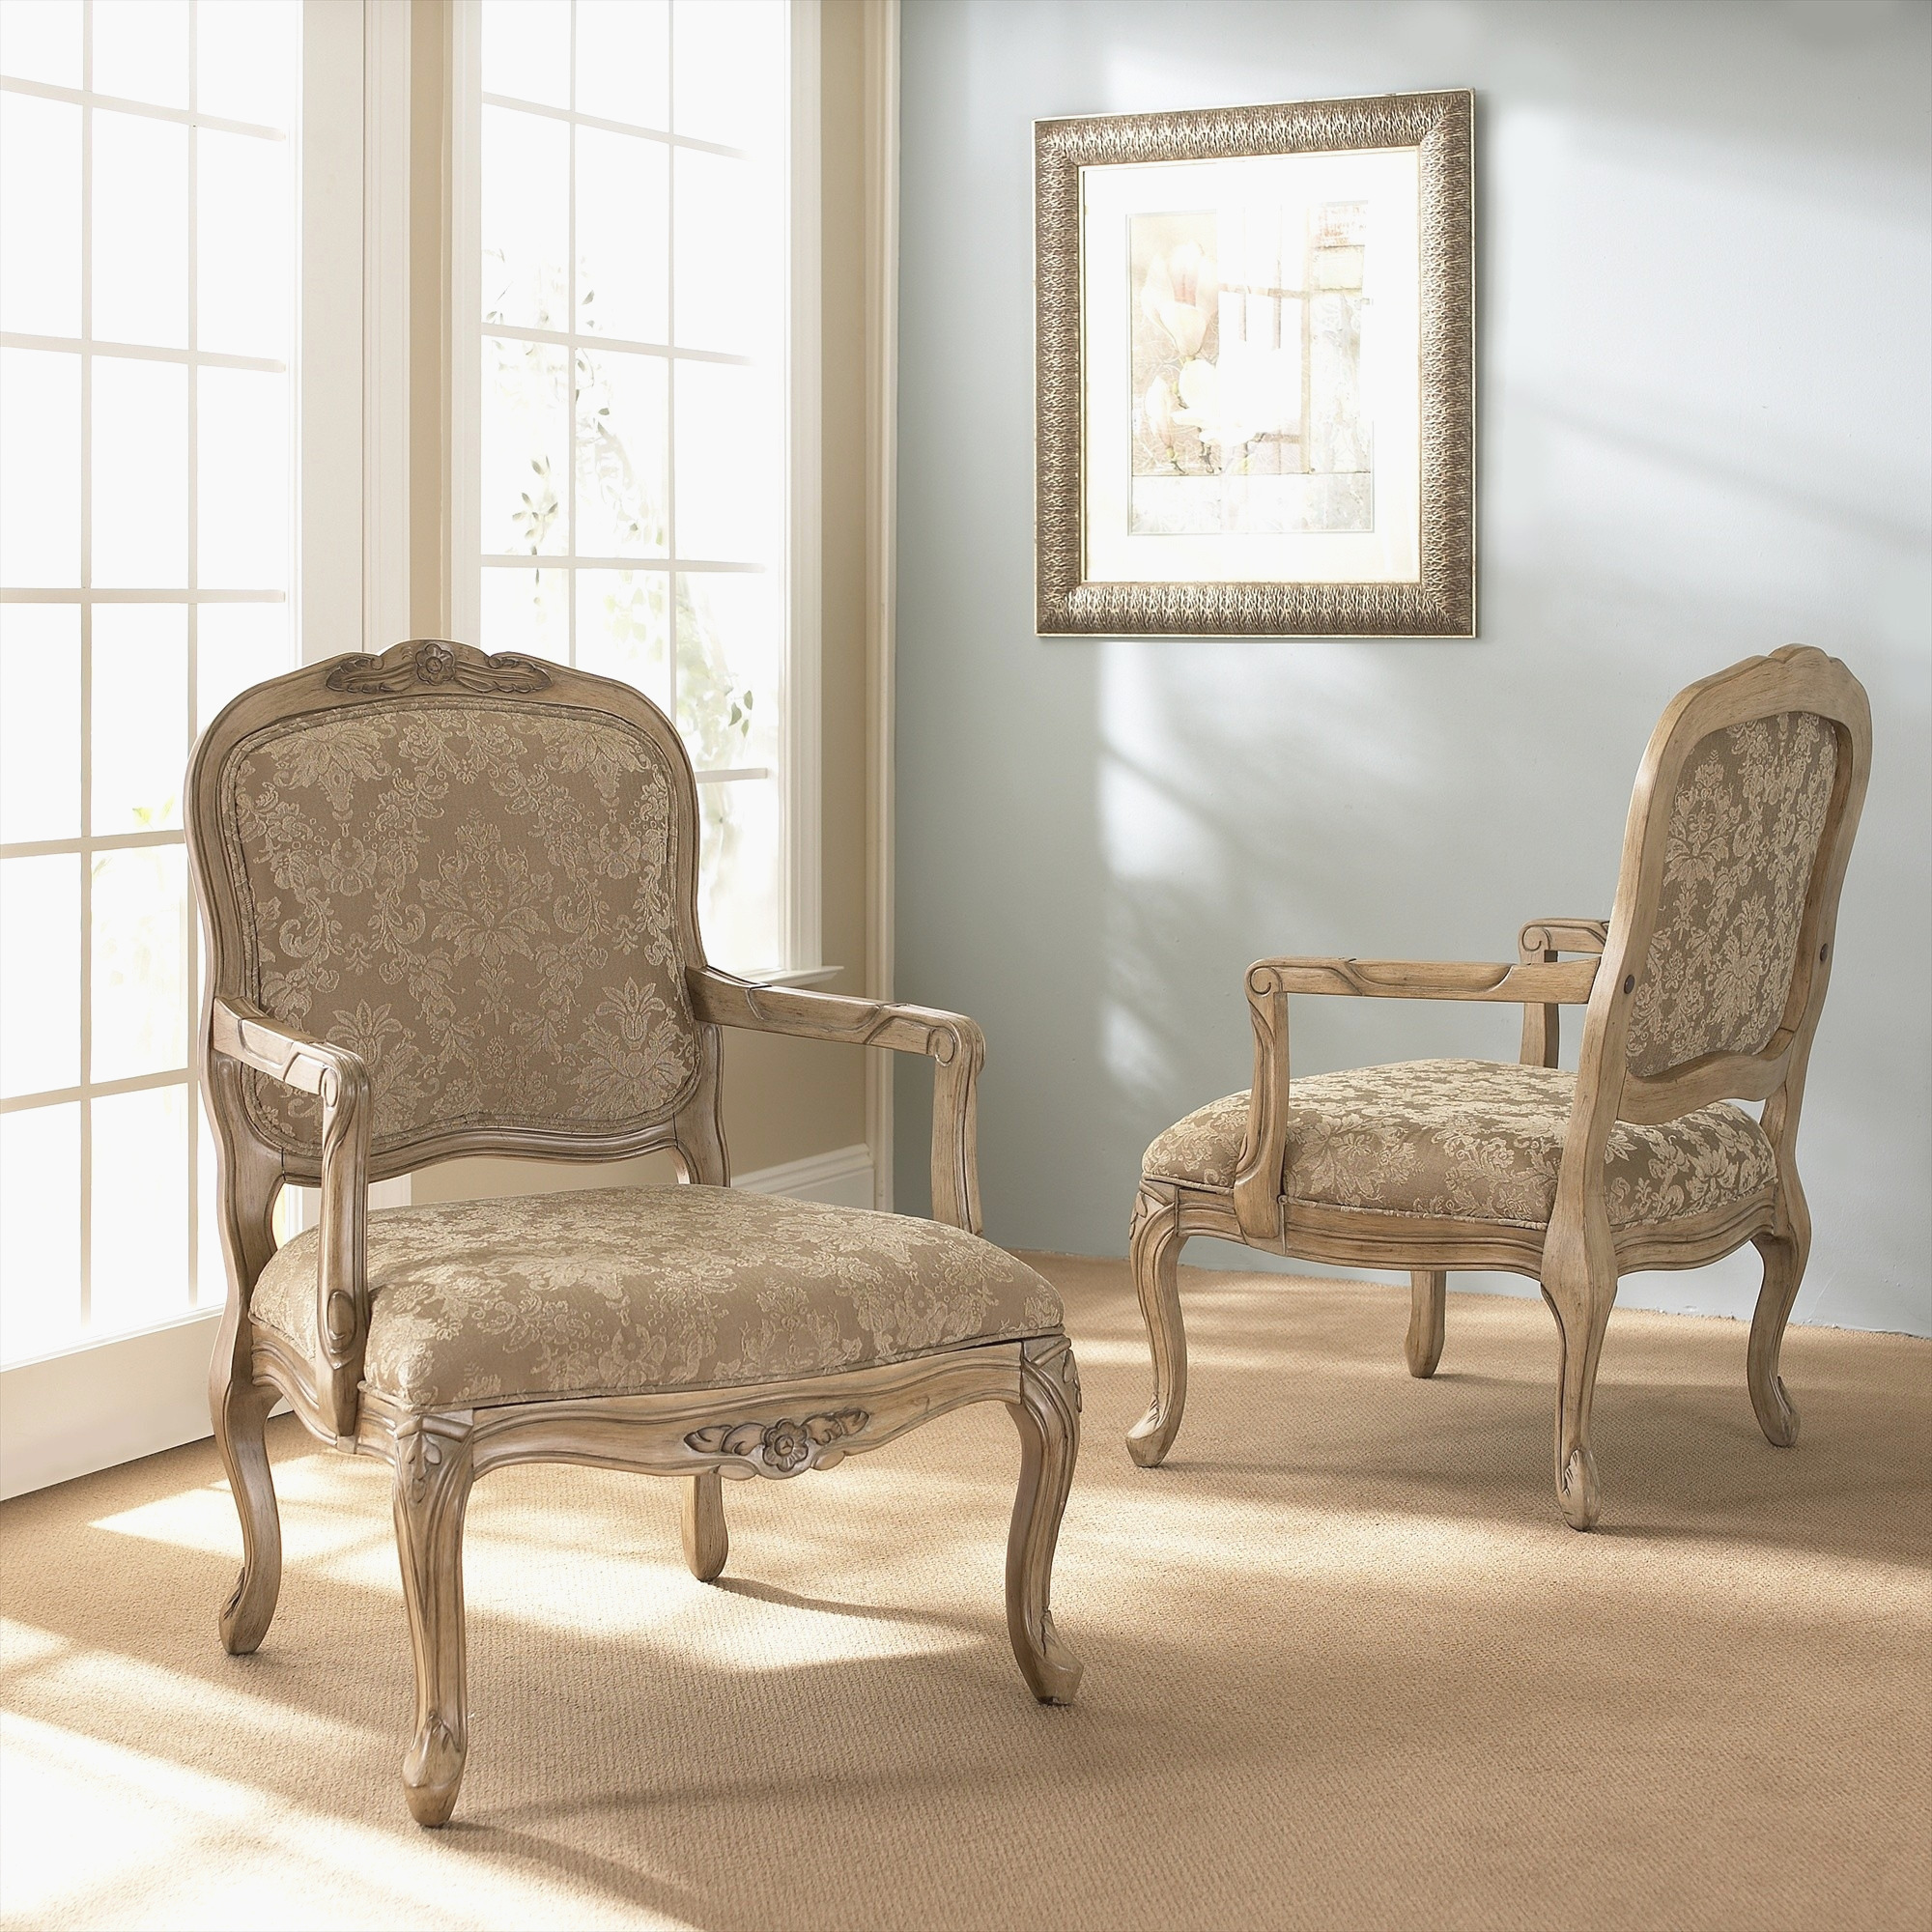 Table Decorative Unique Accent Chairs For Living Room 7 Fabric With Arms  Barrel Clearance Small Swivel